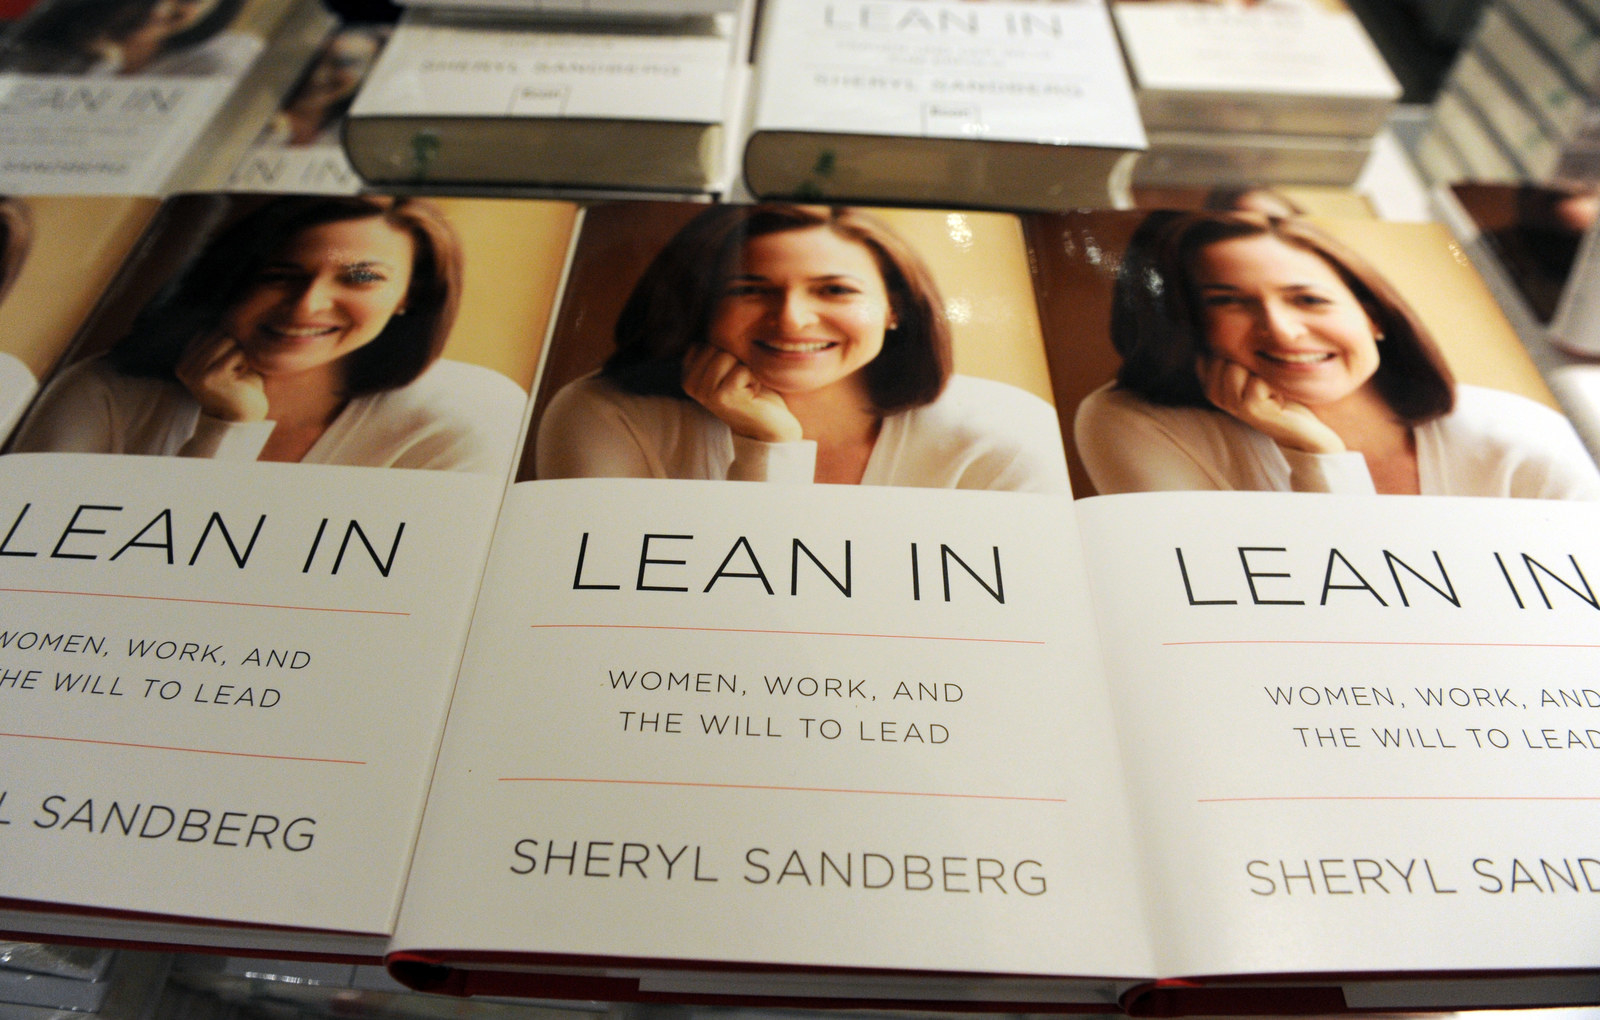 Copies of COO of Facebook Sheryl Sandberg's book 'Lean In: Women, Work, and the Will to Lead' sit on a table at the Zeit (German weekly newpaper) Conference in Hamburg, Germany, April 18, 2013.